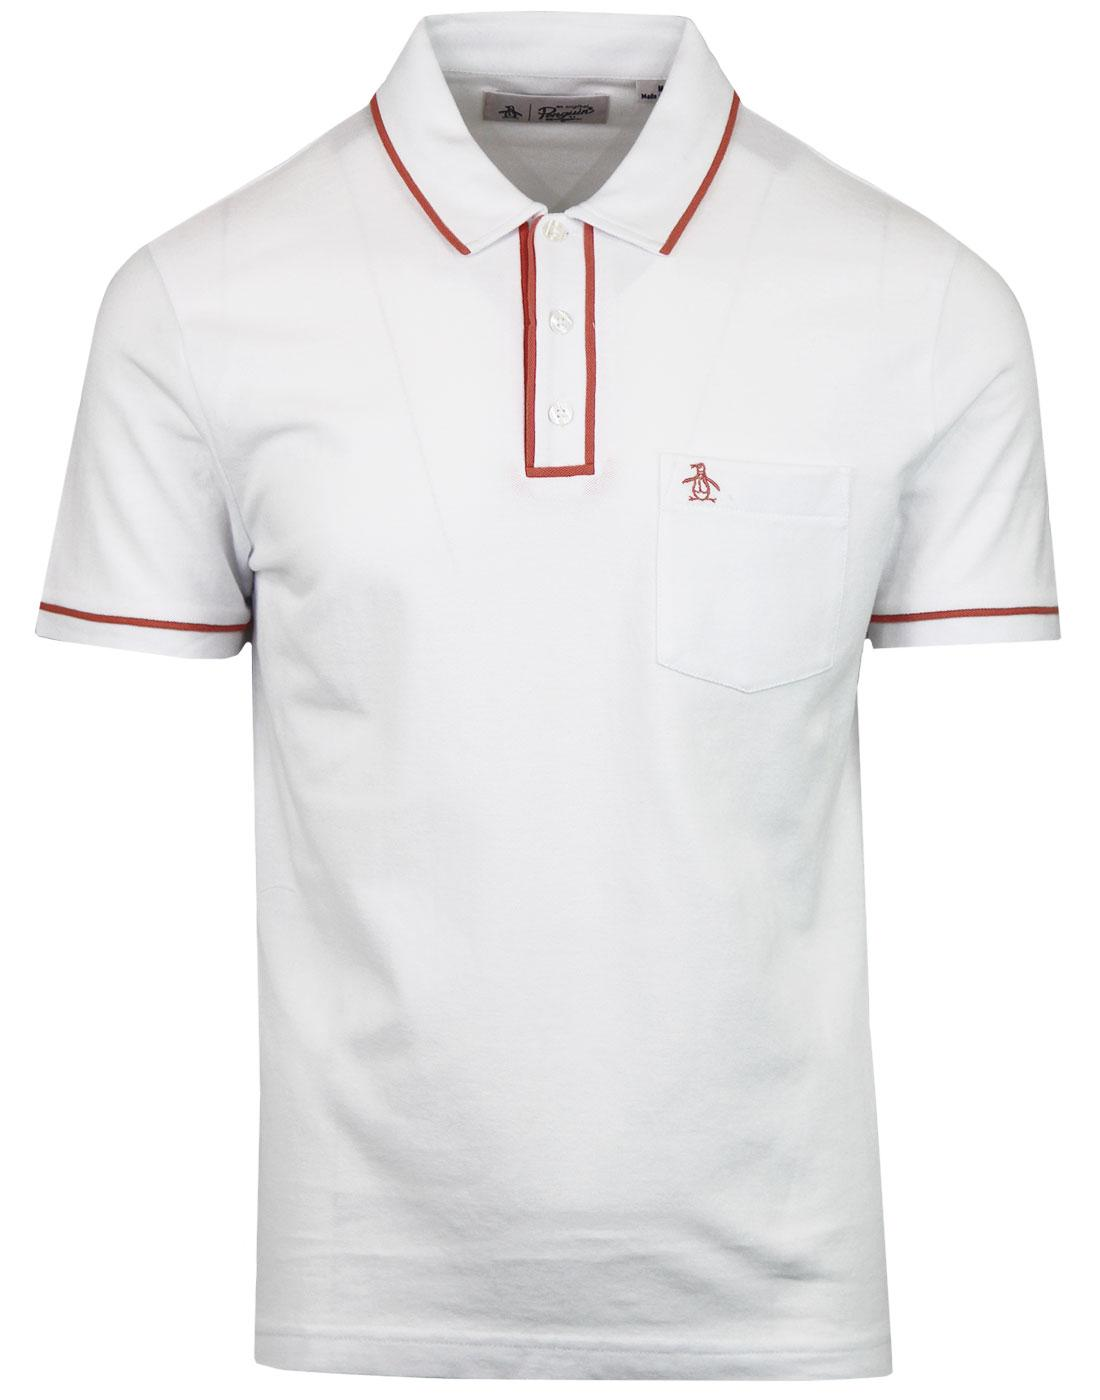 Earl ORIGINAL PENGUIN Mens Mod Polo Top WHITE/PINK